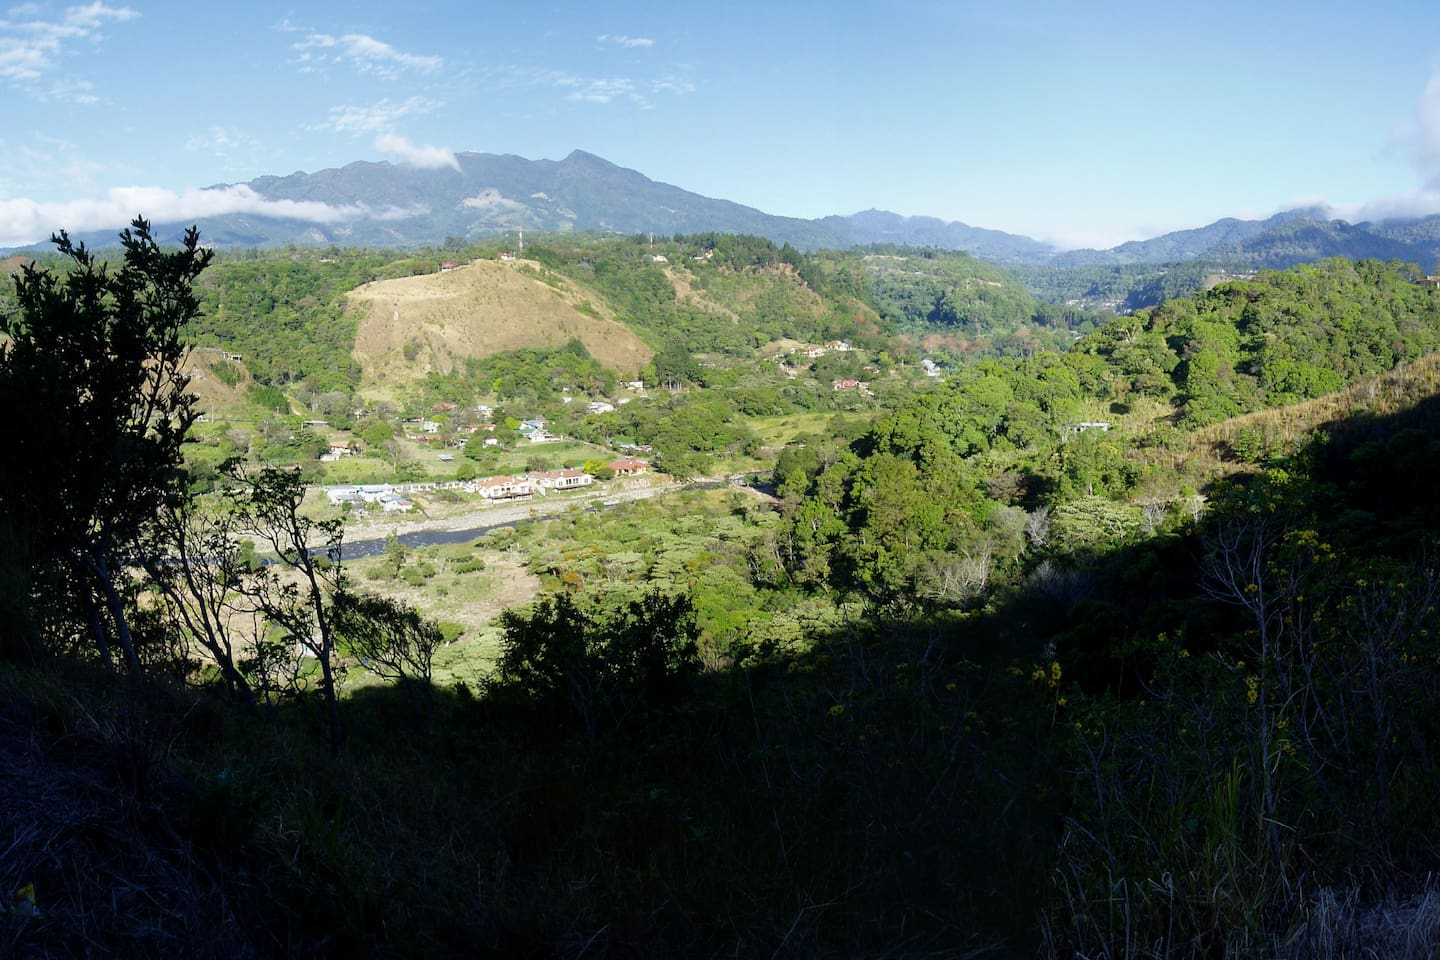 View of Boquete from the shoulders of Volcan Baru